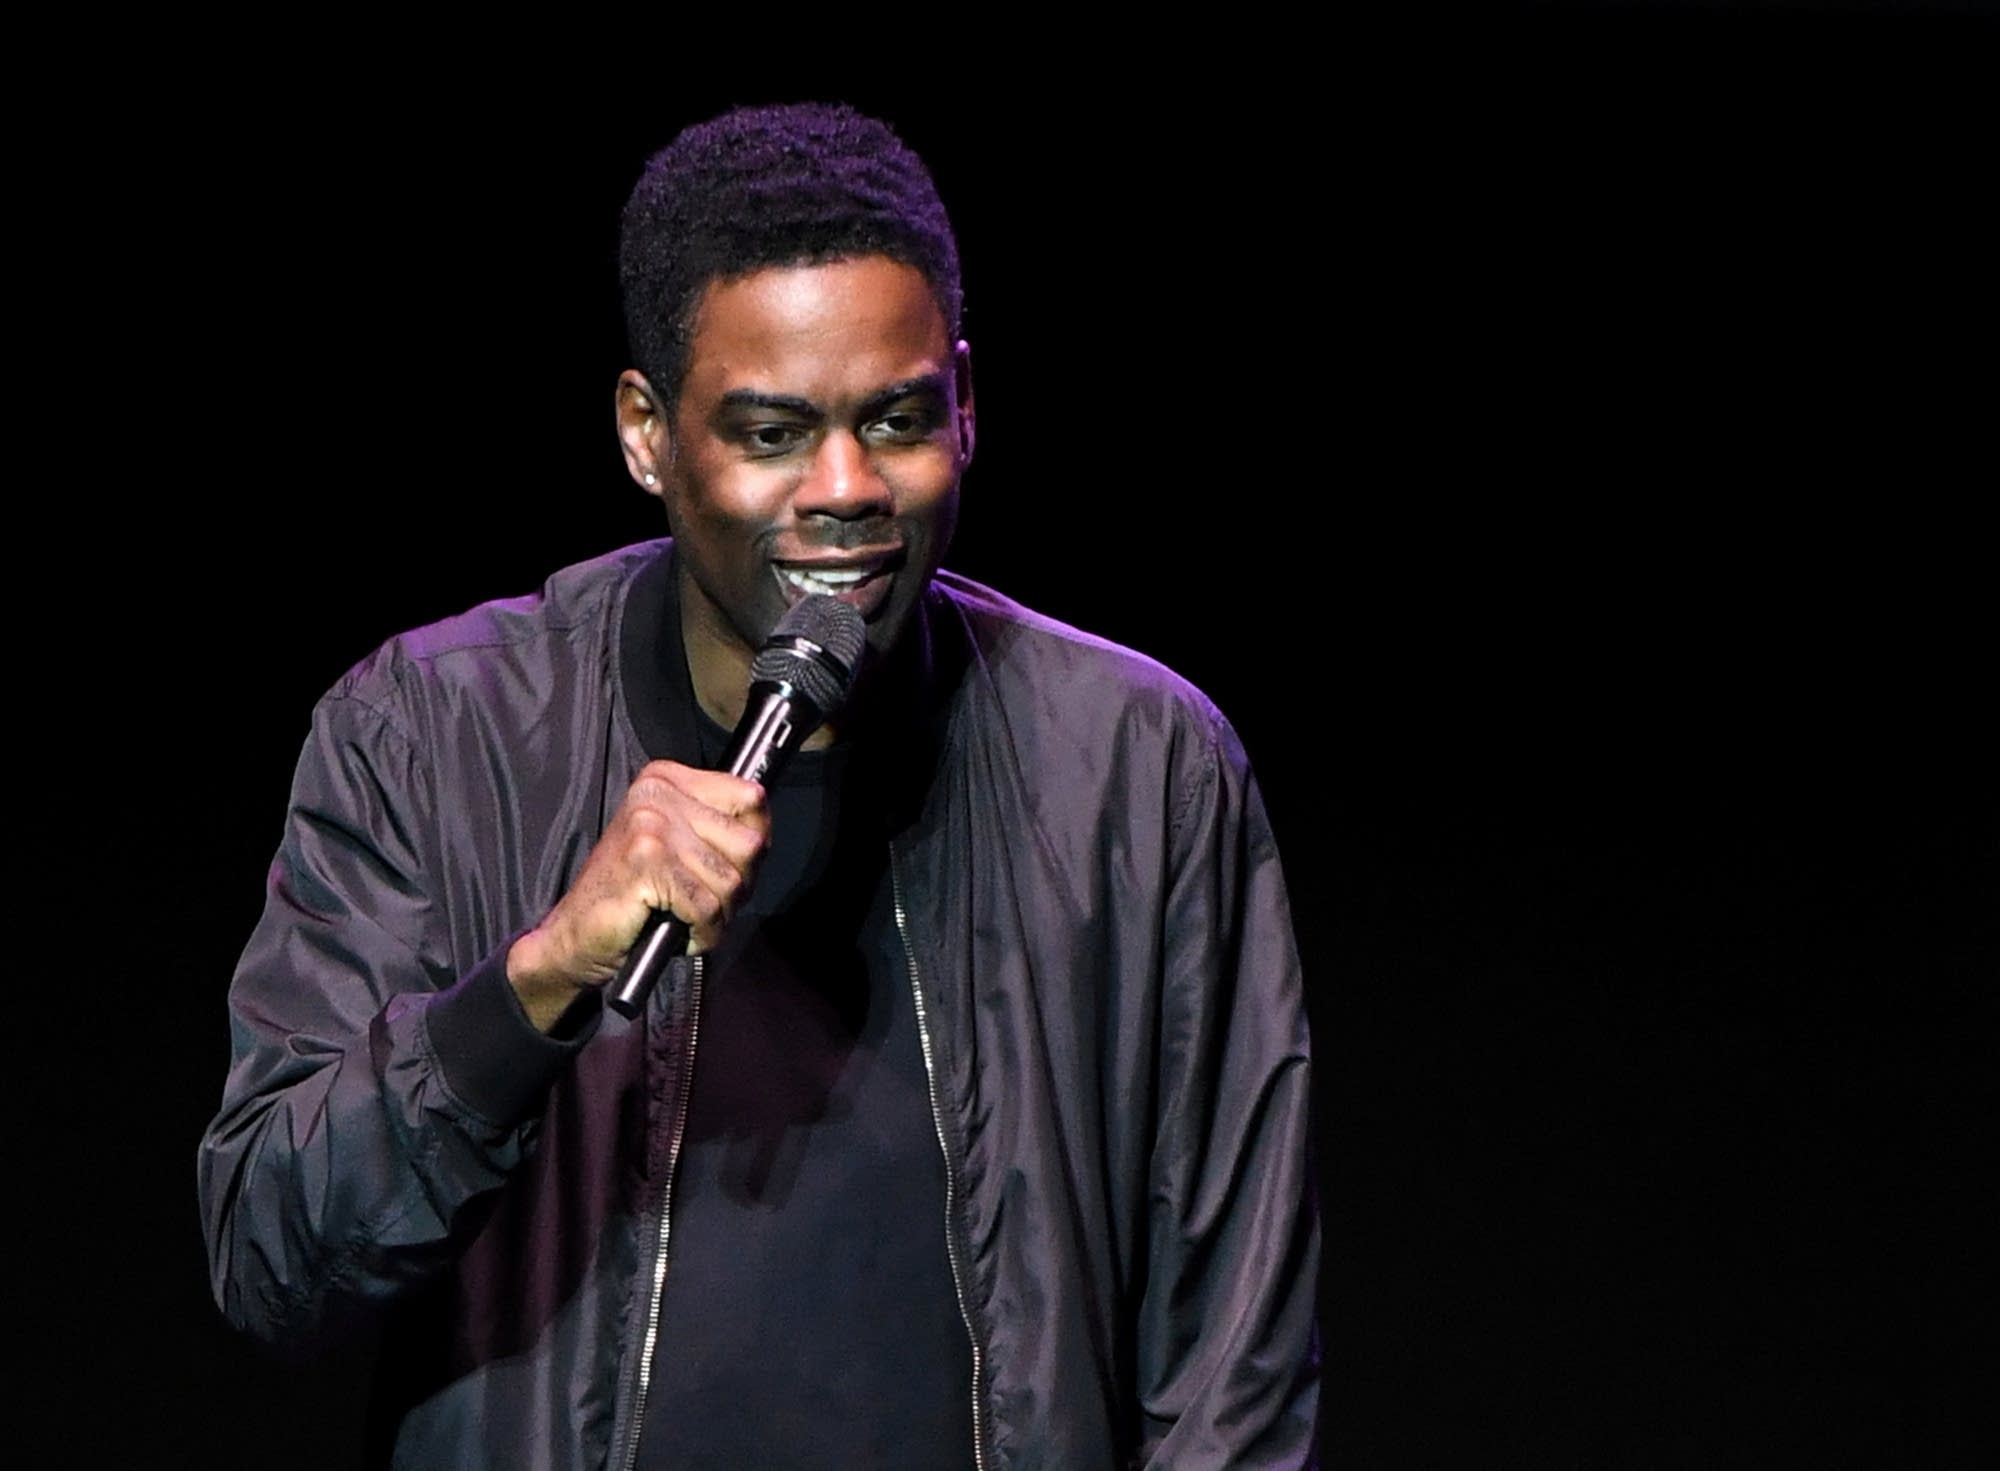 Actor and comedian Chris Rock